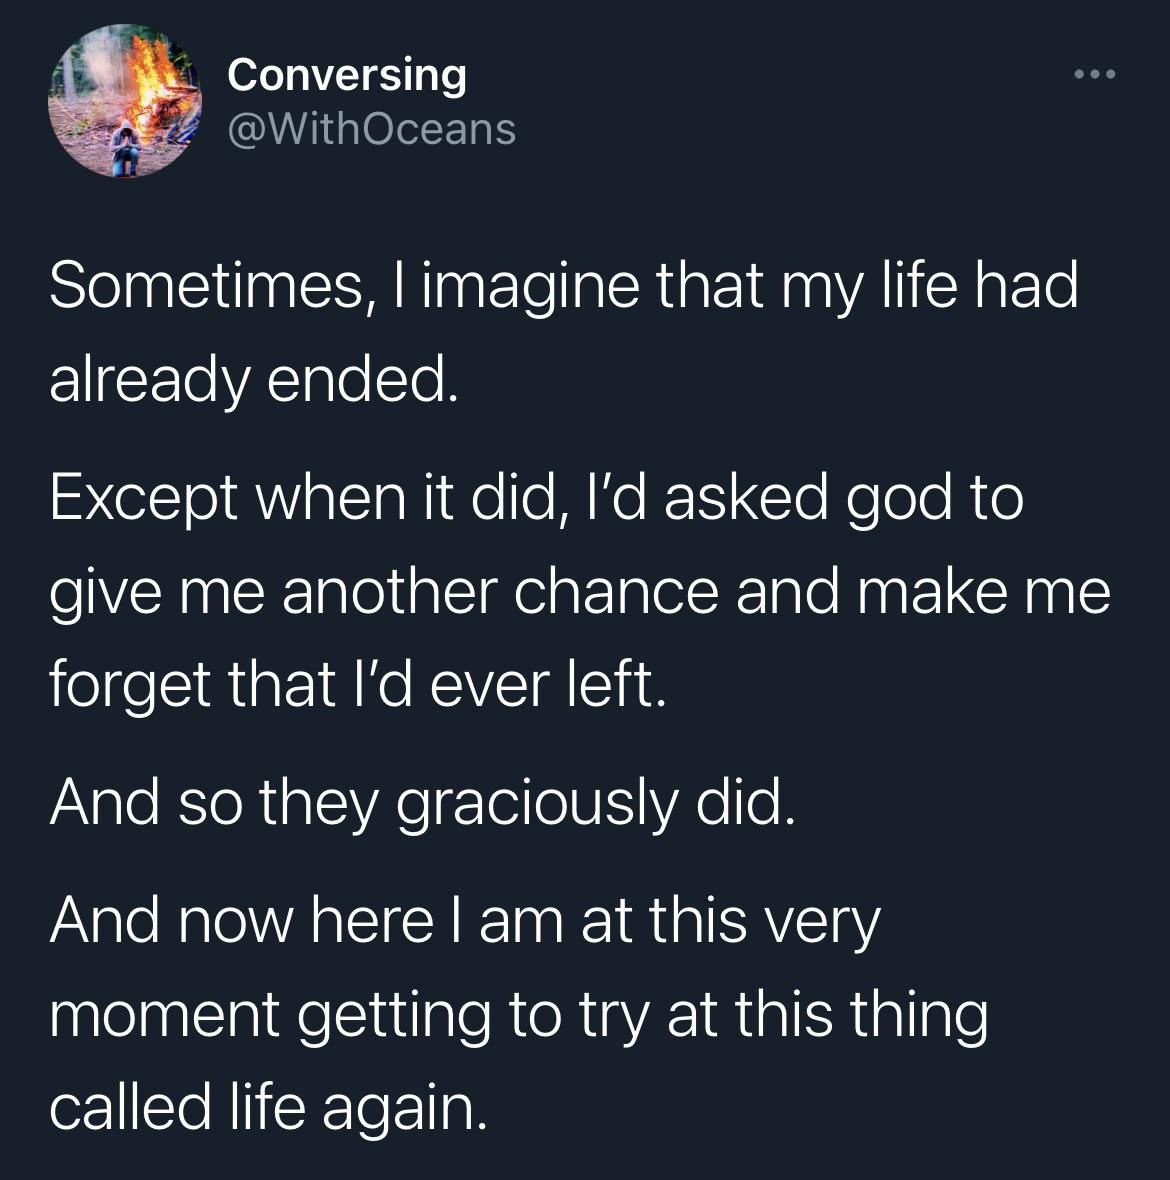 [Image] Another chance